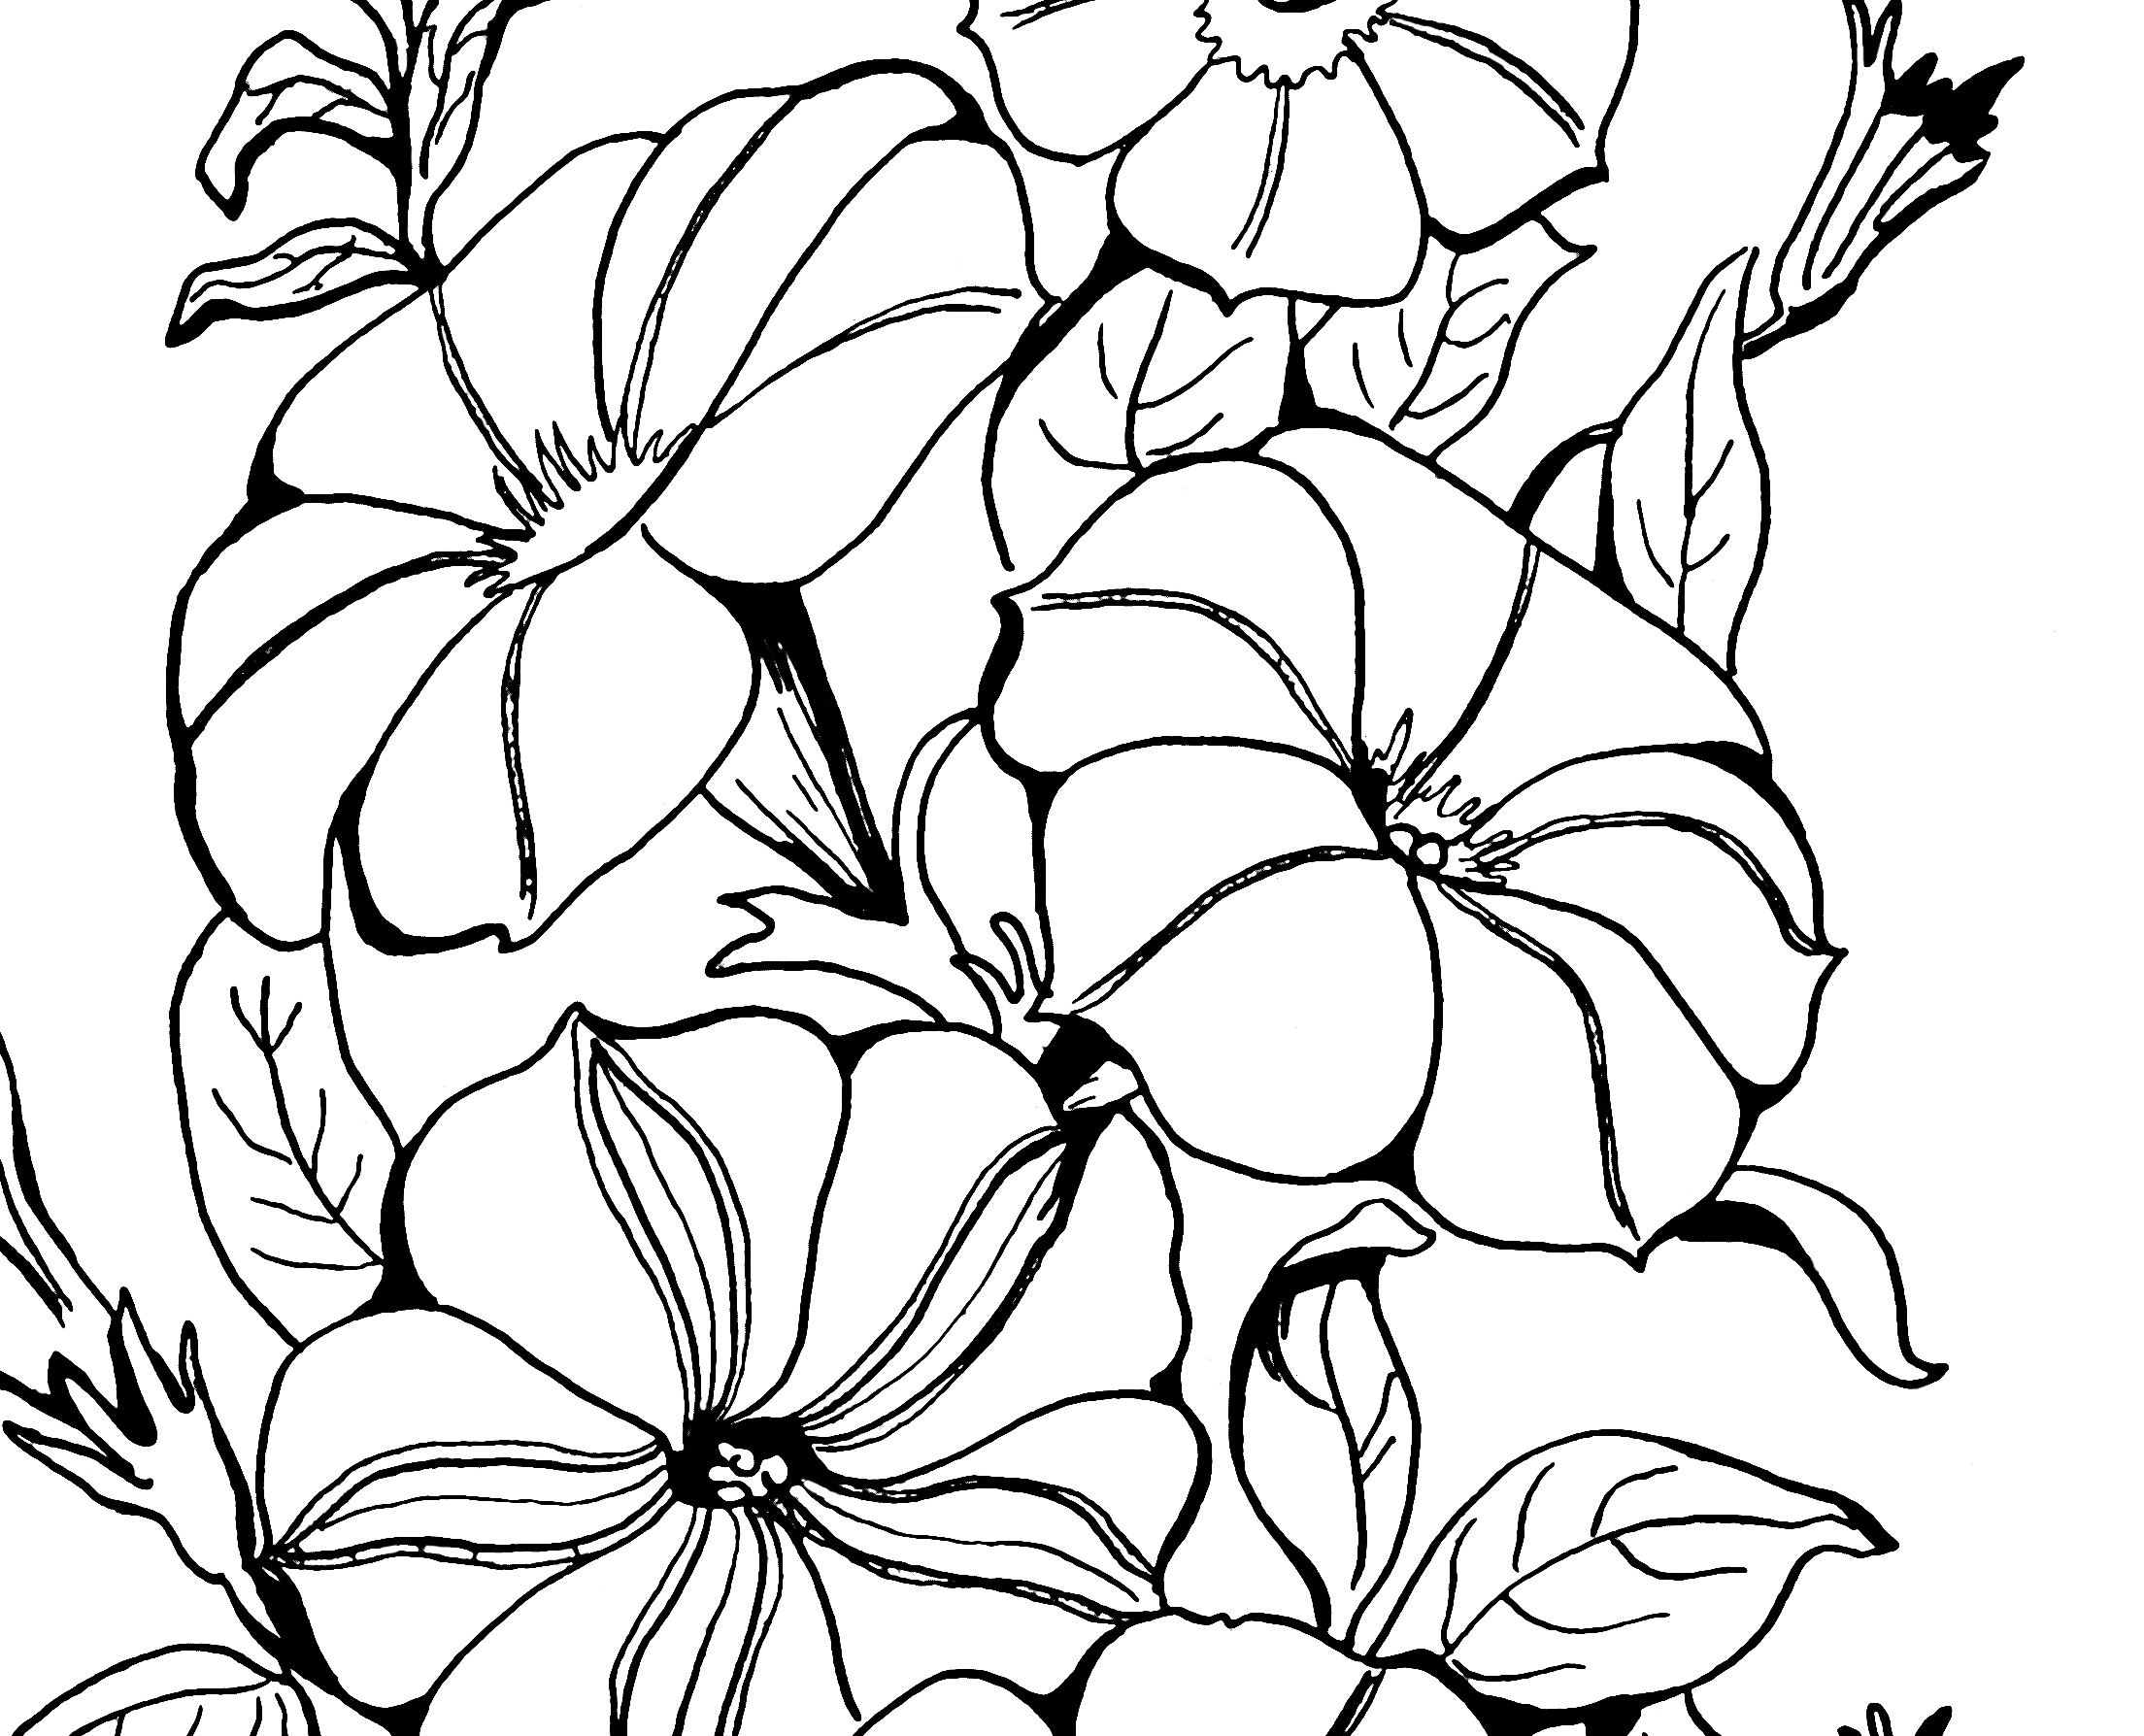 coloring art pages art therapy coloring pages to download and print for free coloring pages art